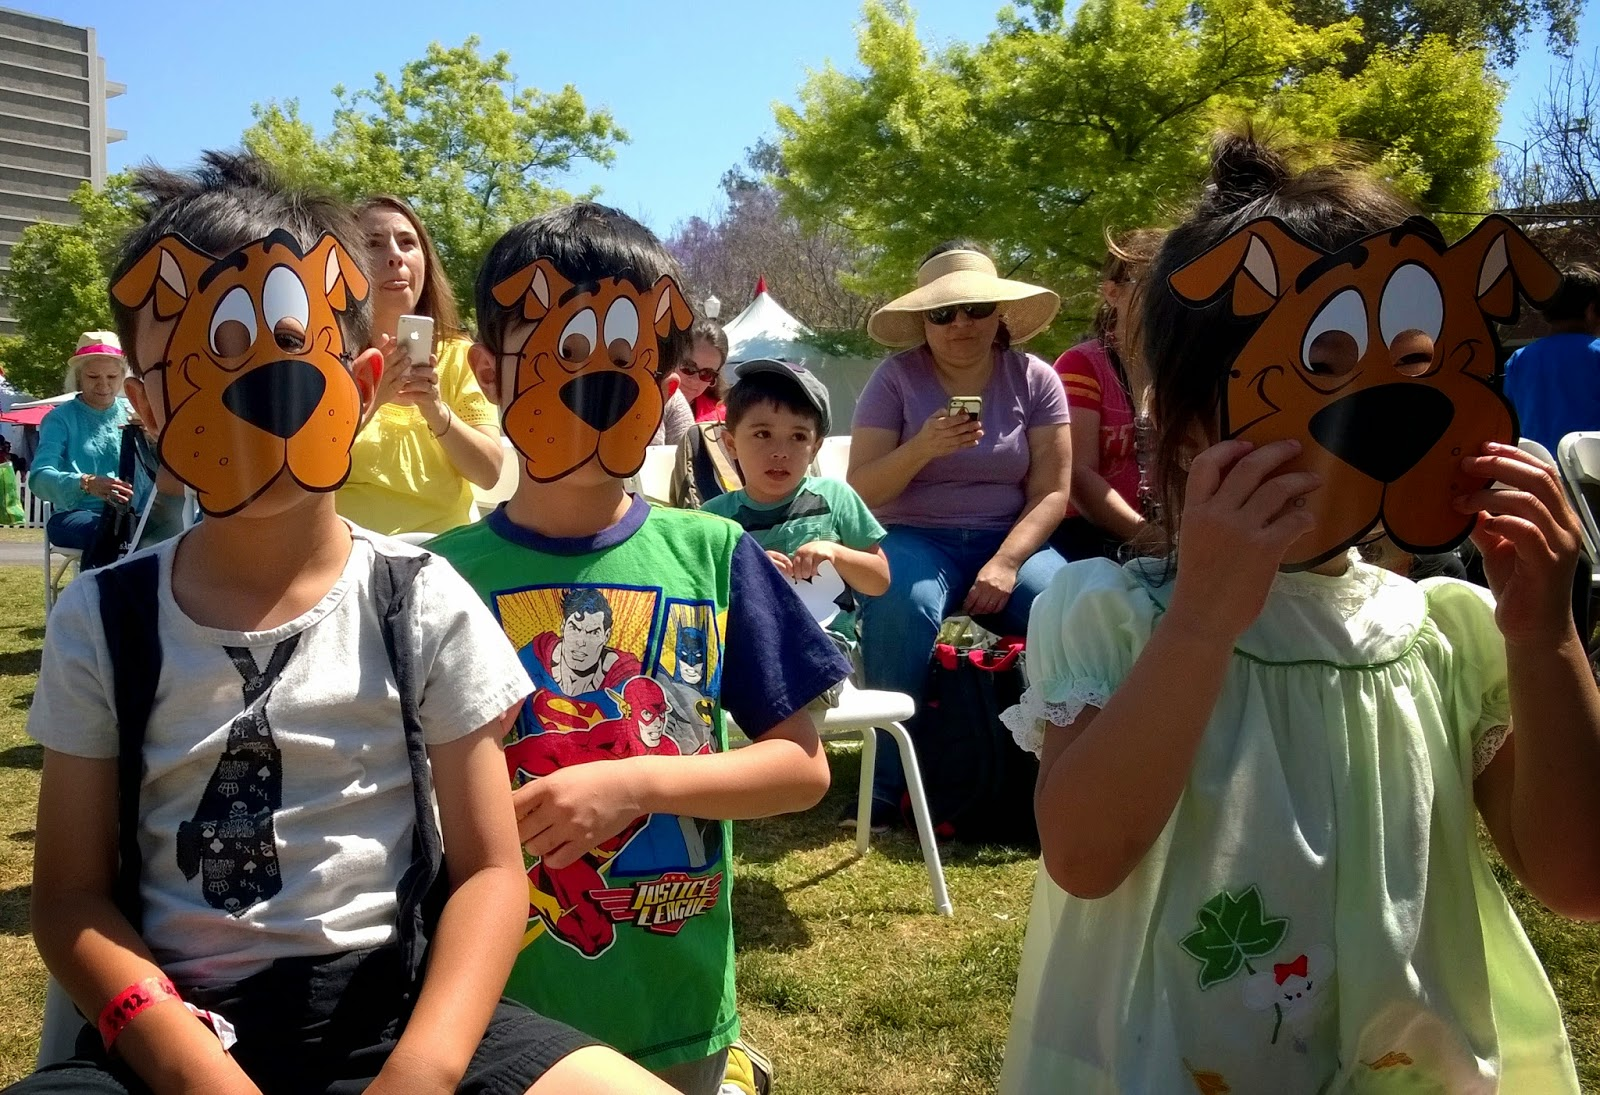 Scooby Doo at the Festival of Books